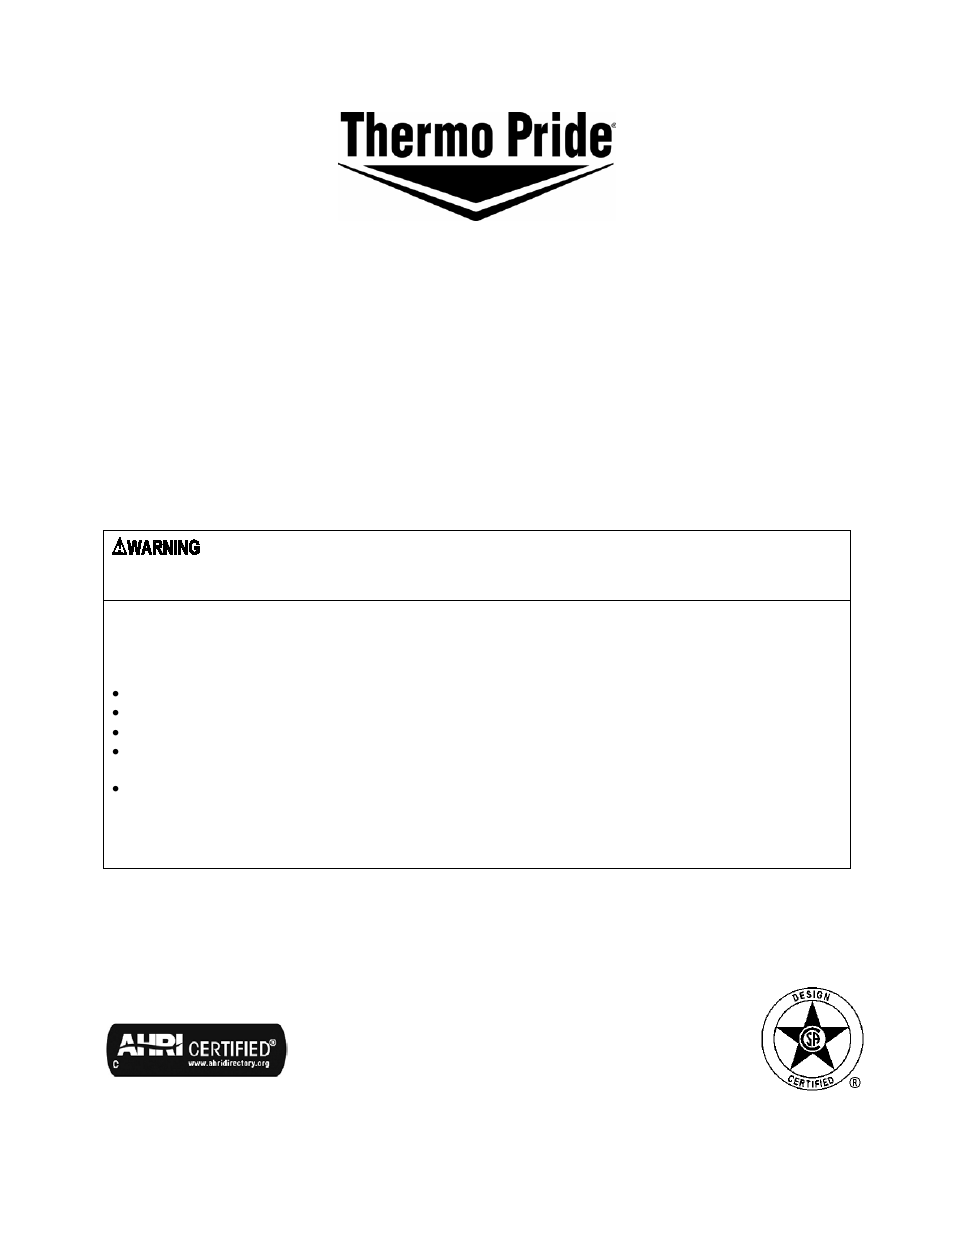 Thermo Pride Gas Propane Furnace Premiere Series 2 Stage Chx3 User Electric Refrigerator Wiring Schematic Manual 65 Pages Also For Cdx3